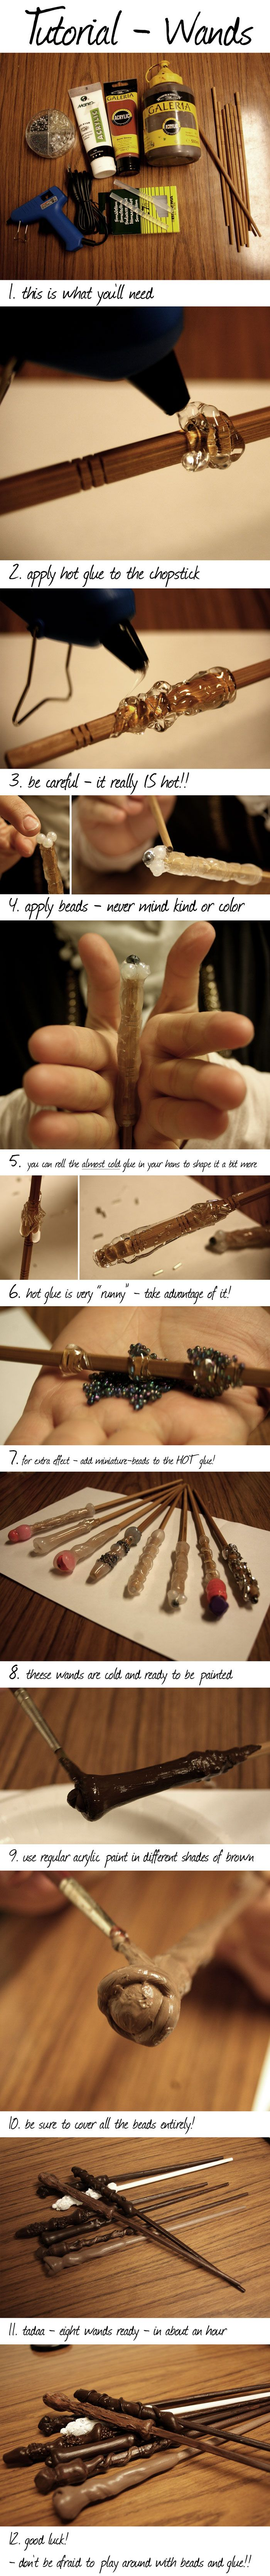 Another way of making your own wands - faster than the rolled up paper method, but I still prefere that once